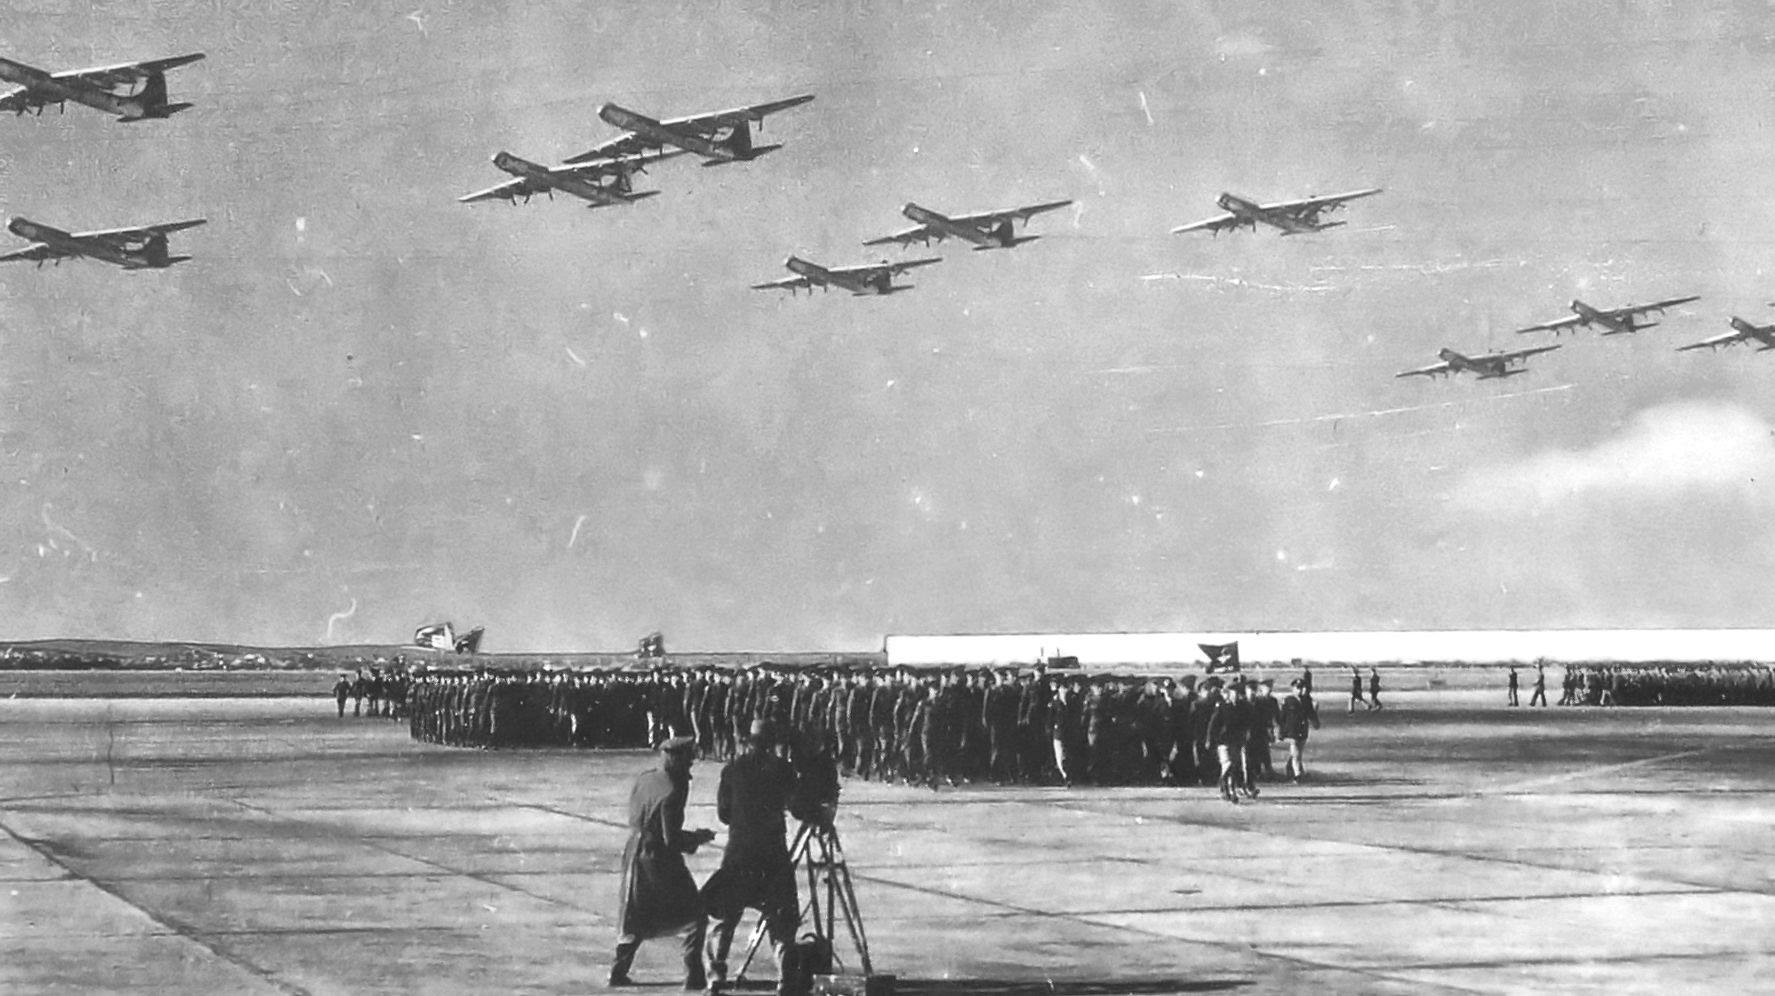 mass_flyover_of_7th_bombardment_wing_b-36s.jpg